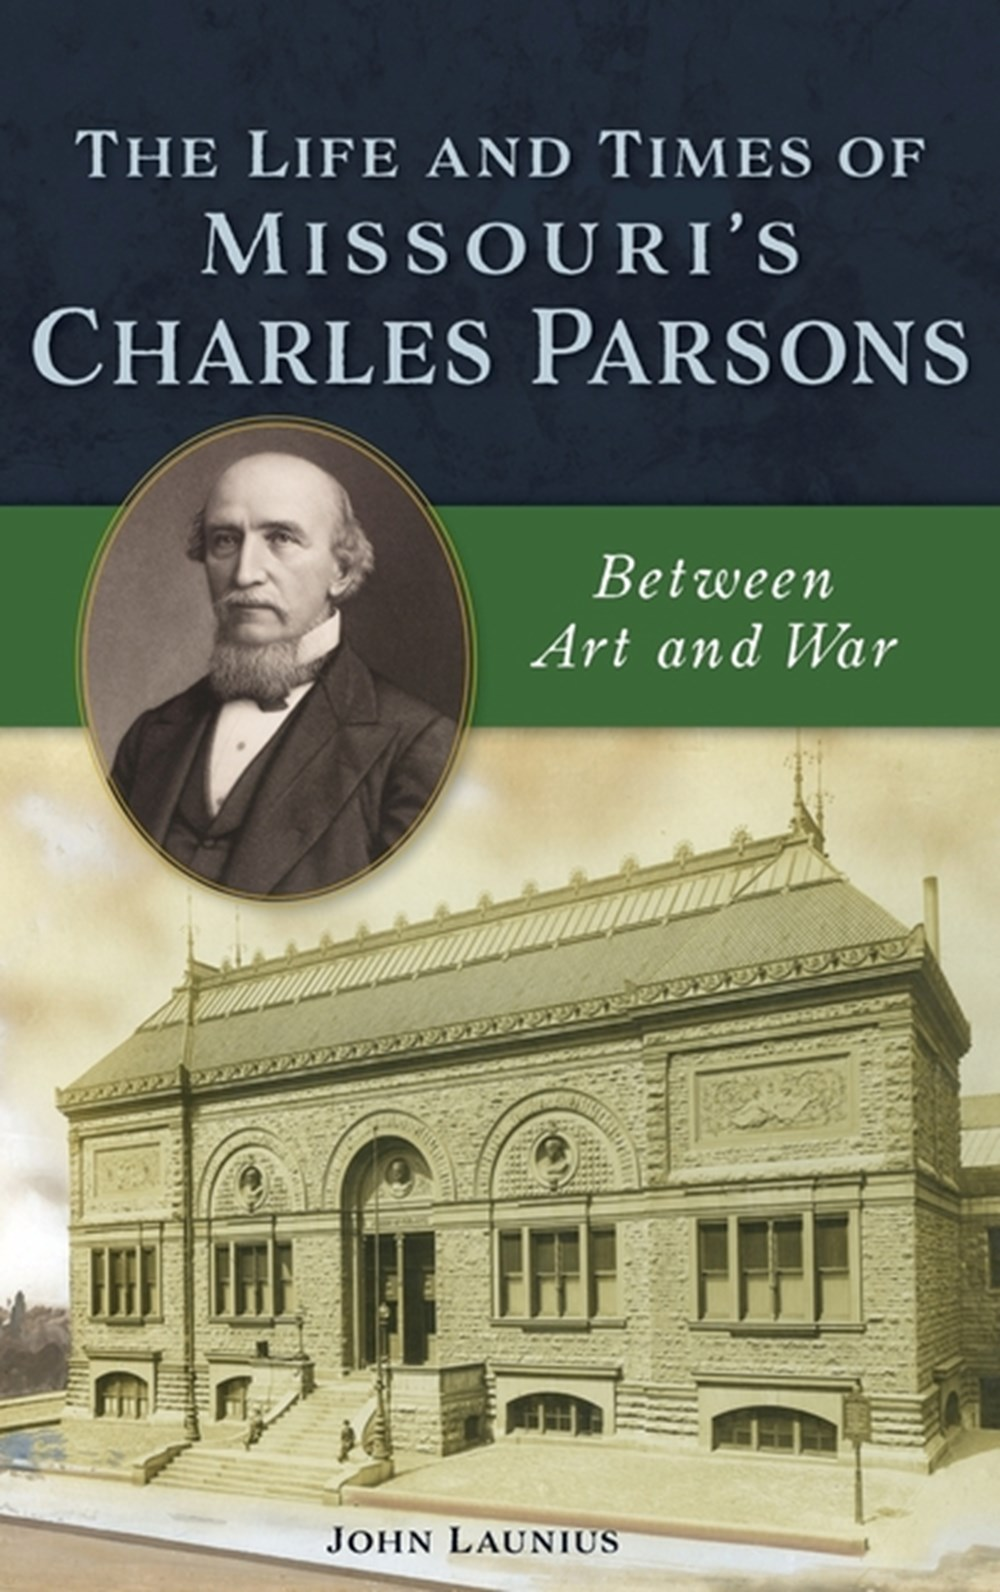 Life and Times of Missouri's Charles Parsons Between Art and War